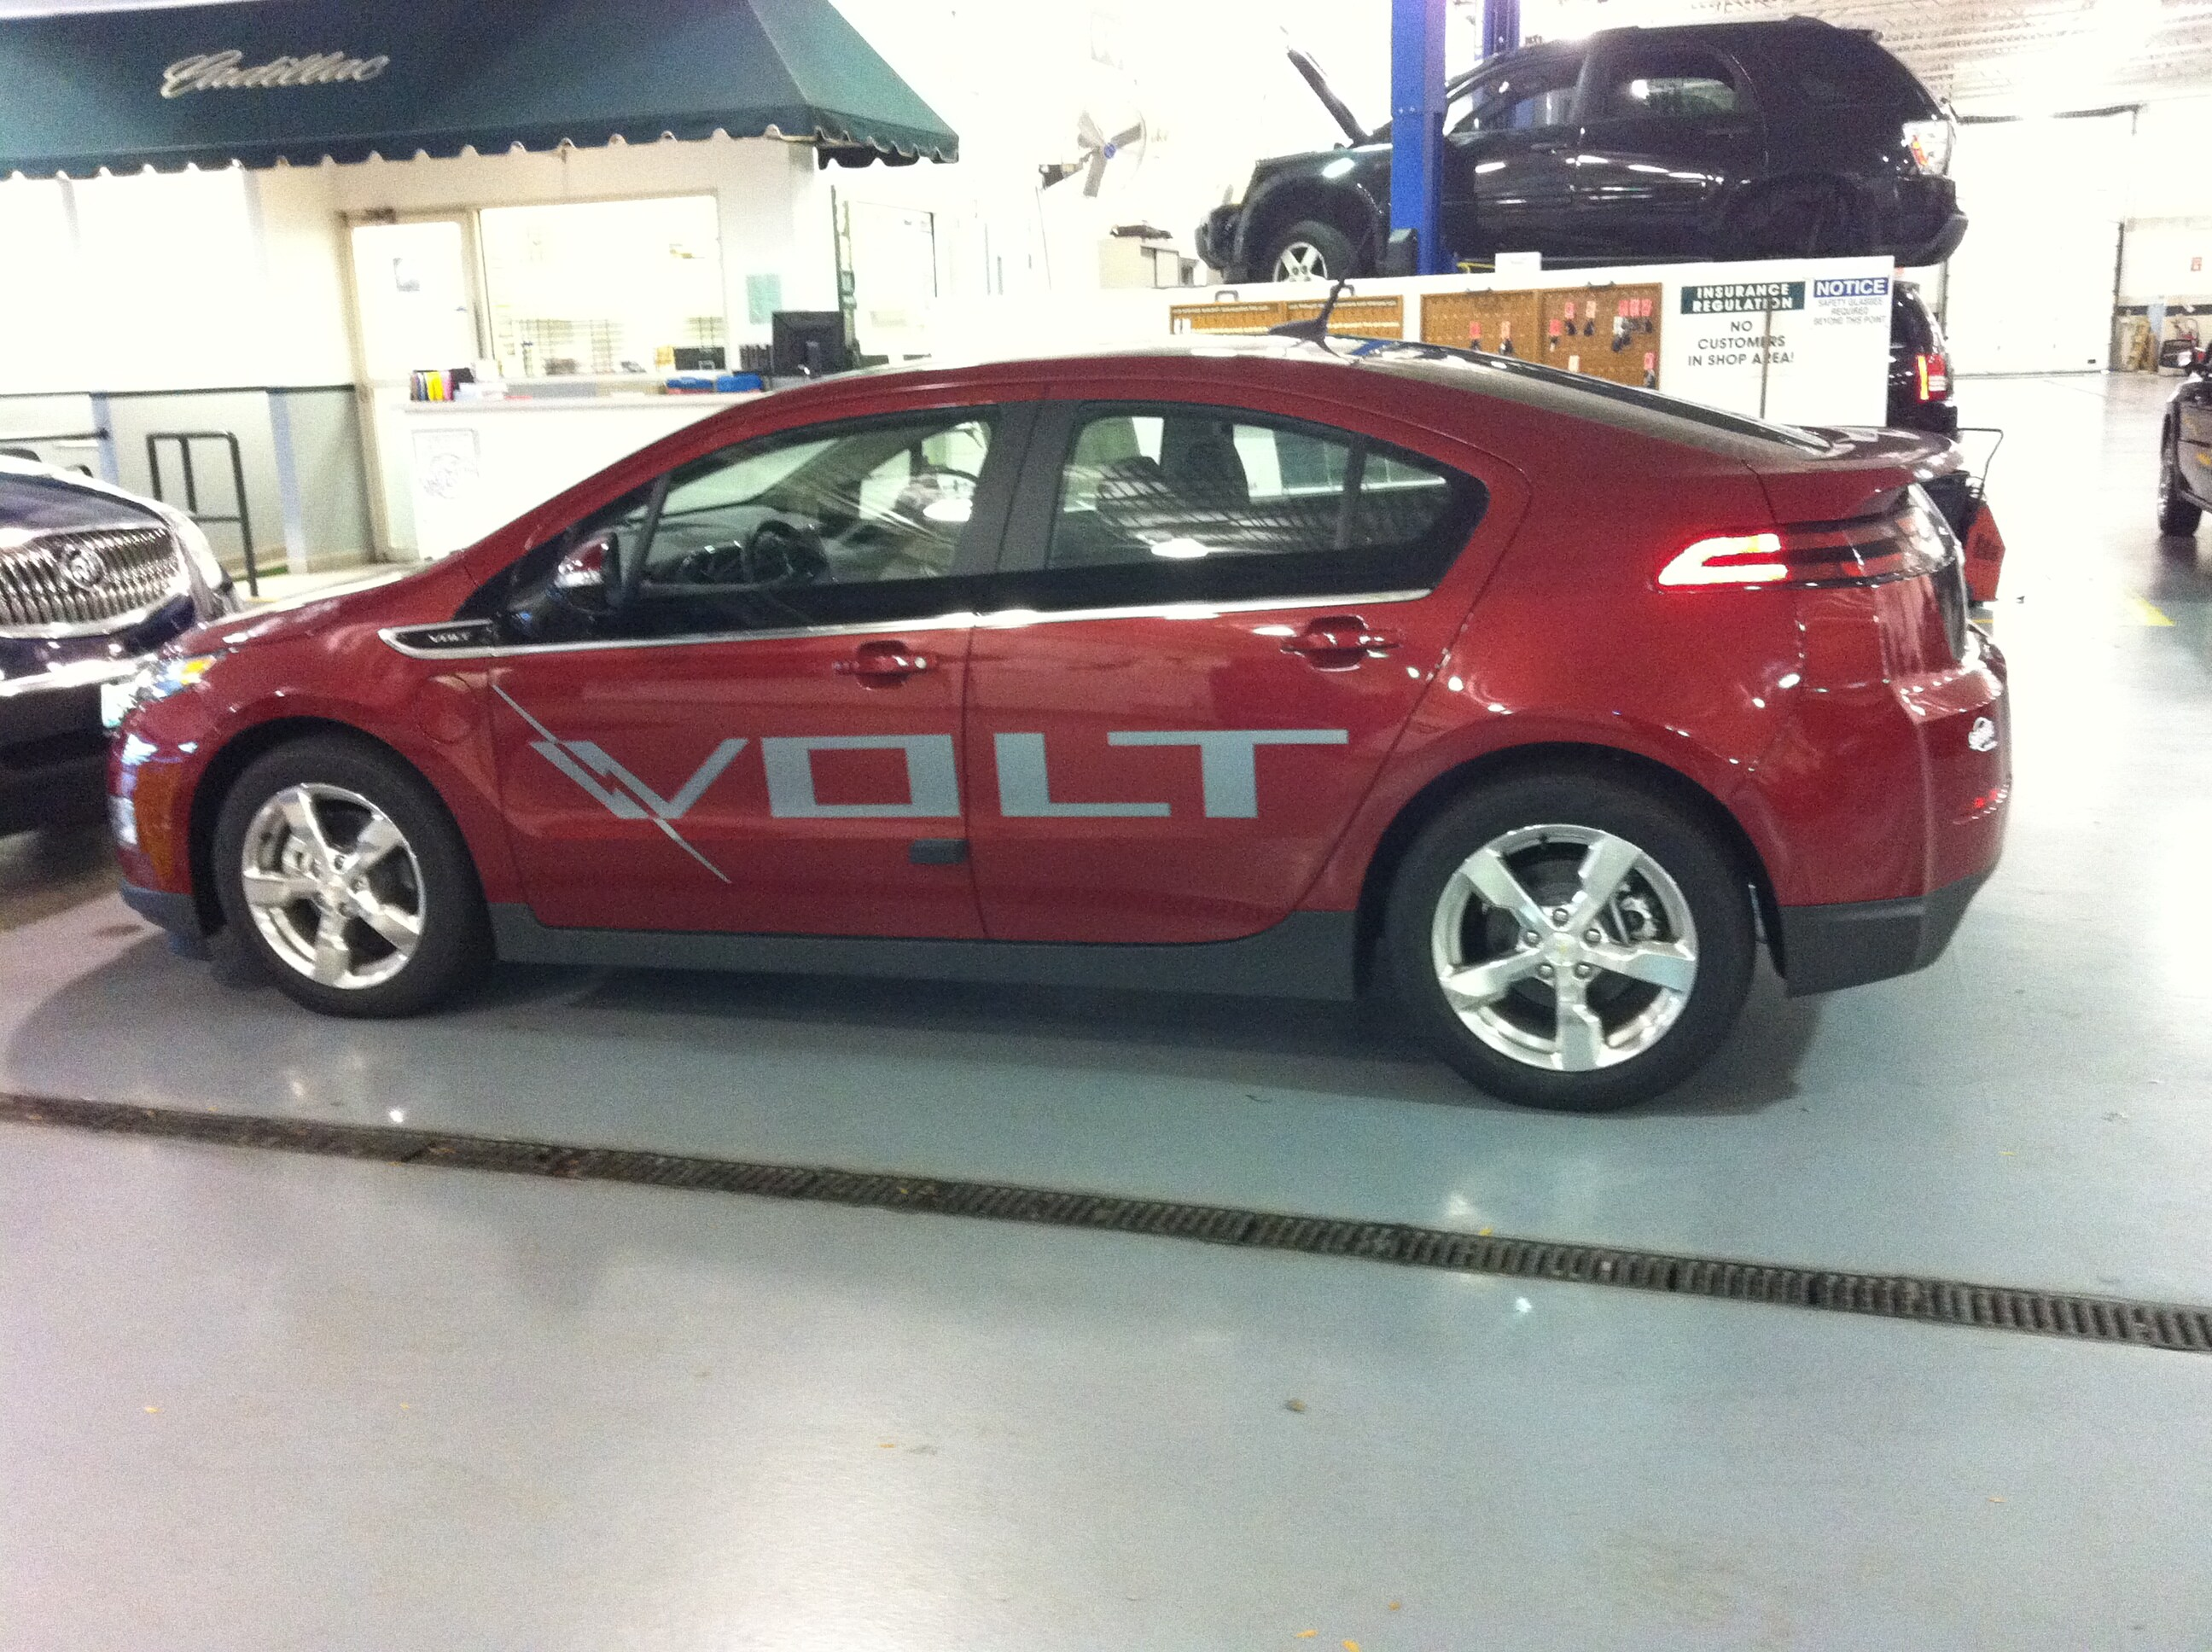 Gary Lang Chevy >> It S Here The 2012 Chevy Volt Is At Gary Lang Chevrolet